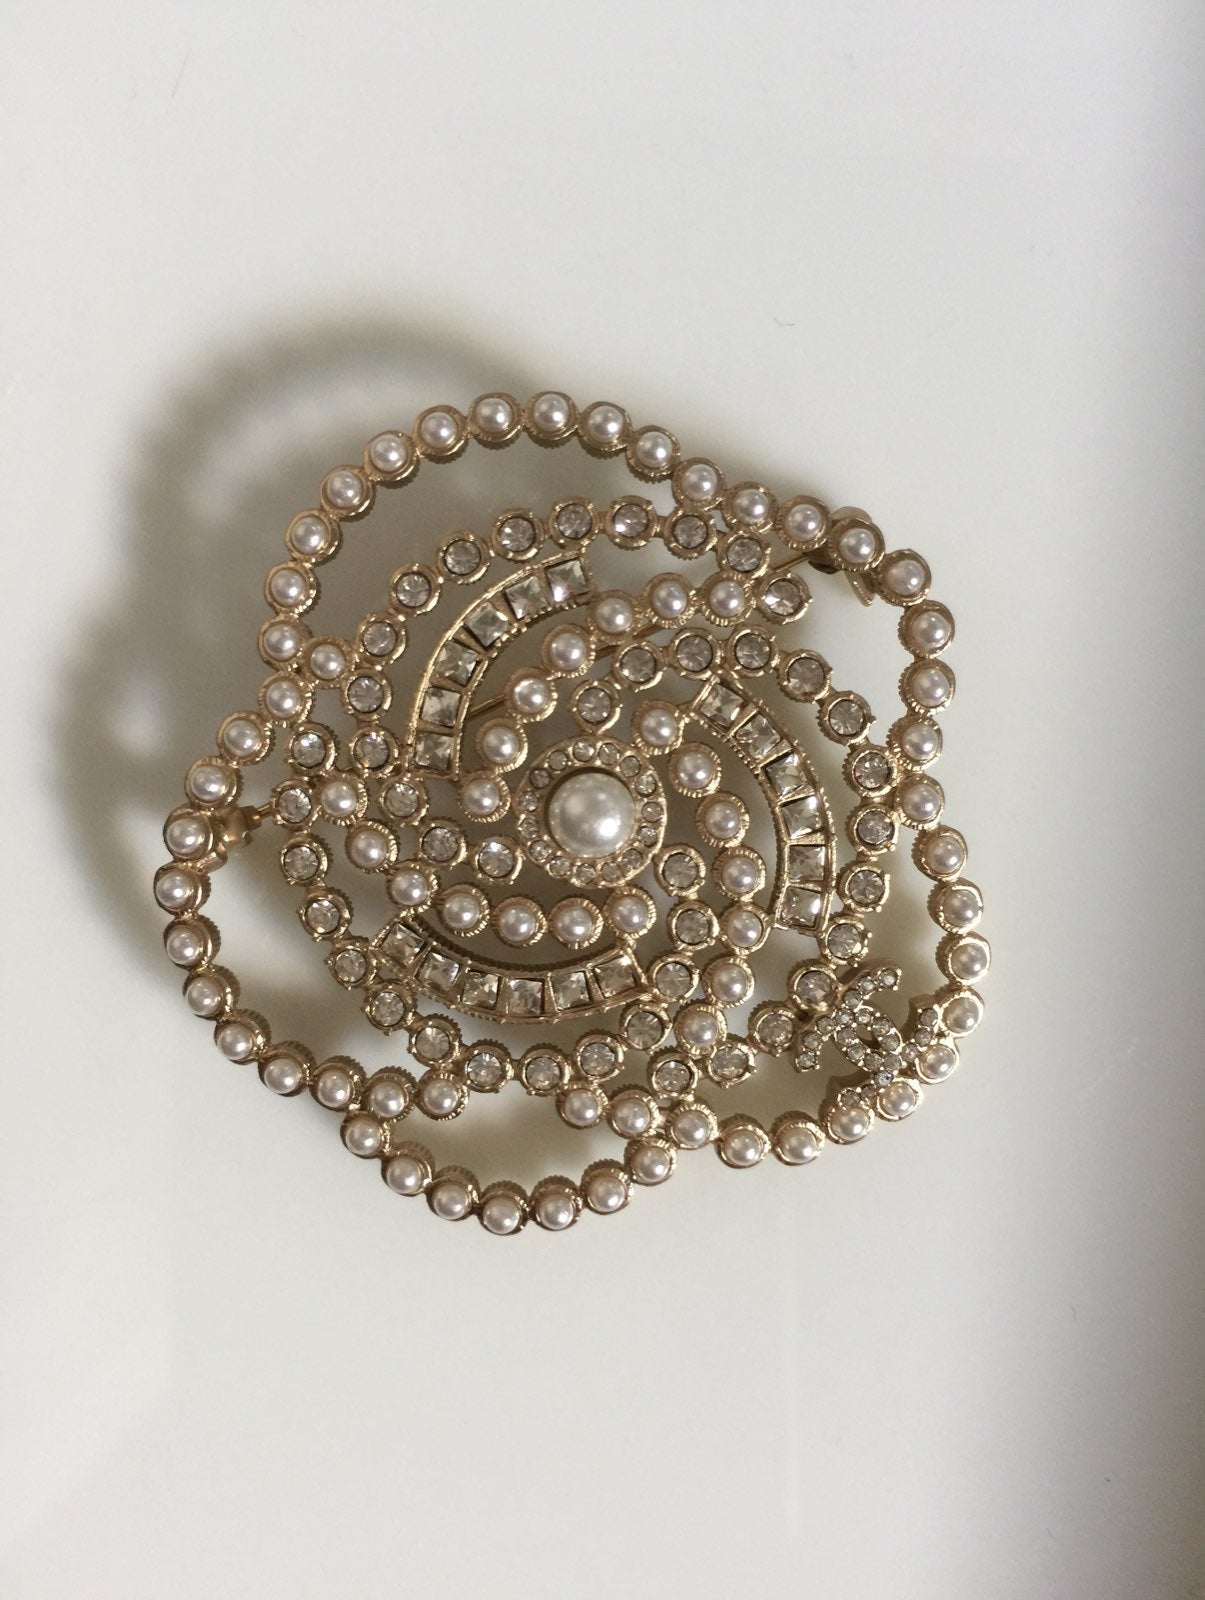 Chanel   Pearls and Rhinstone Brooch Pin